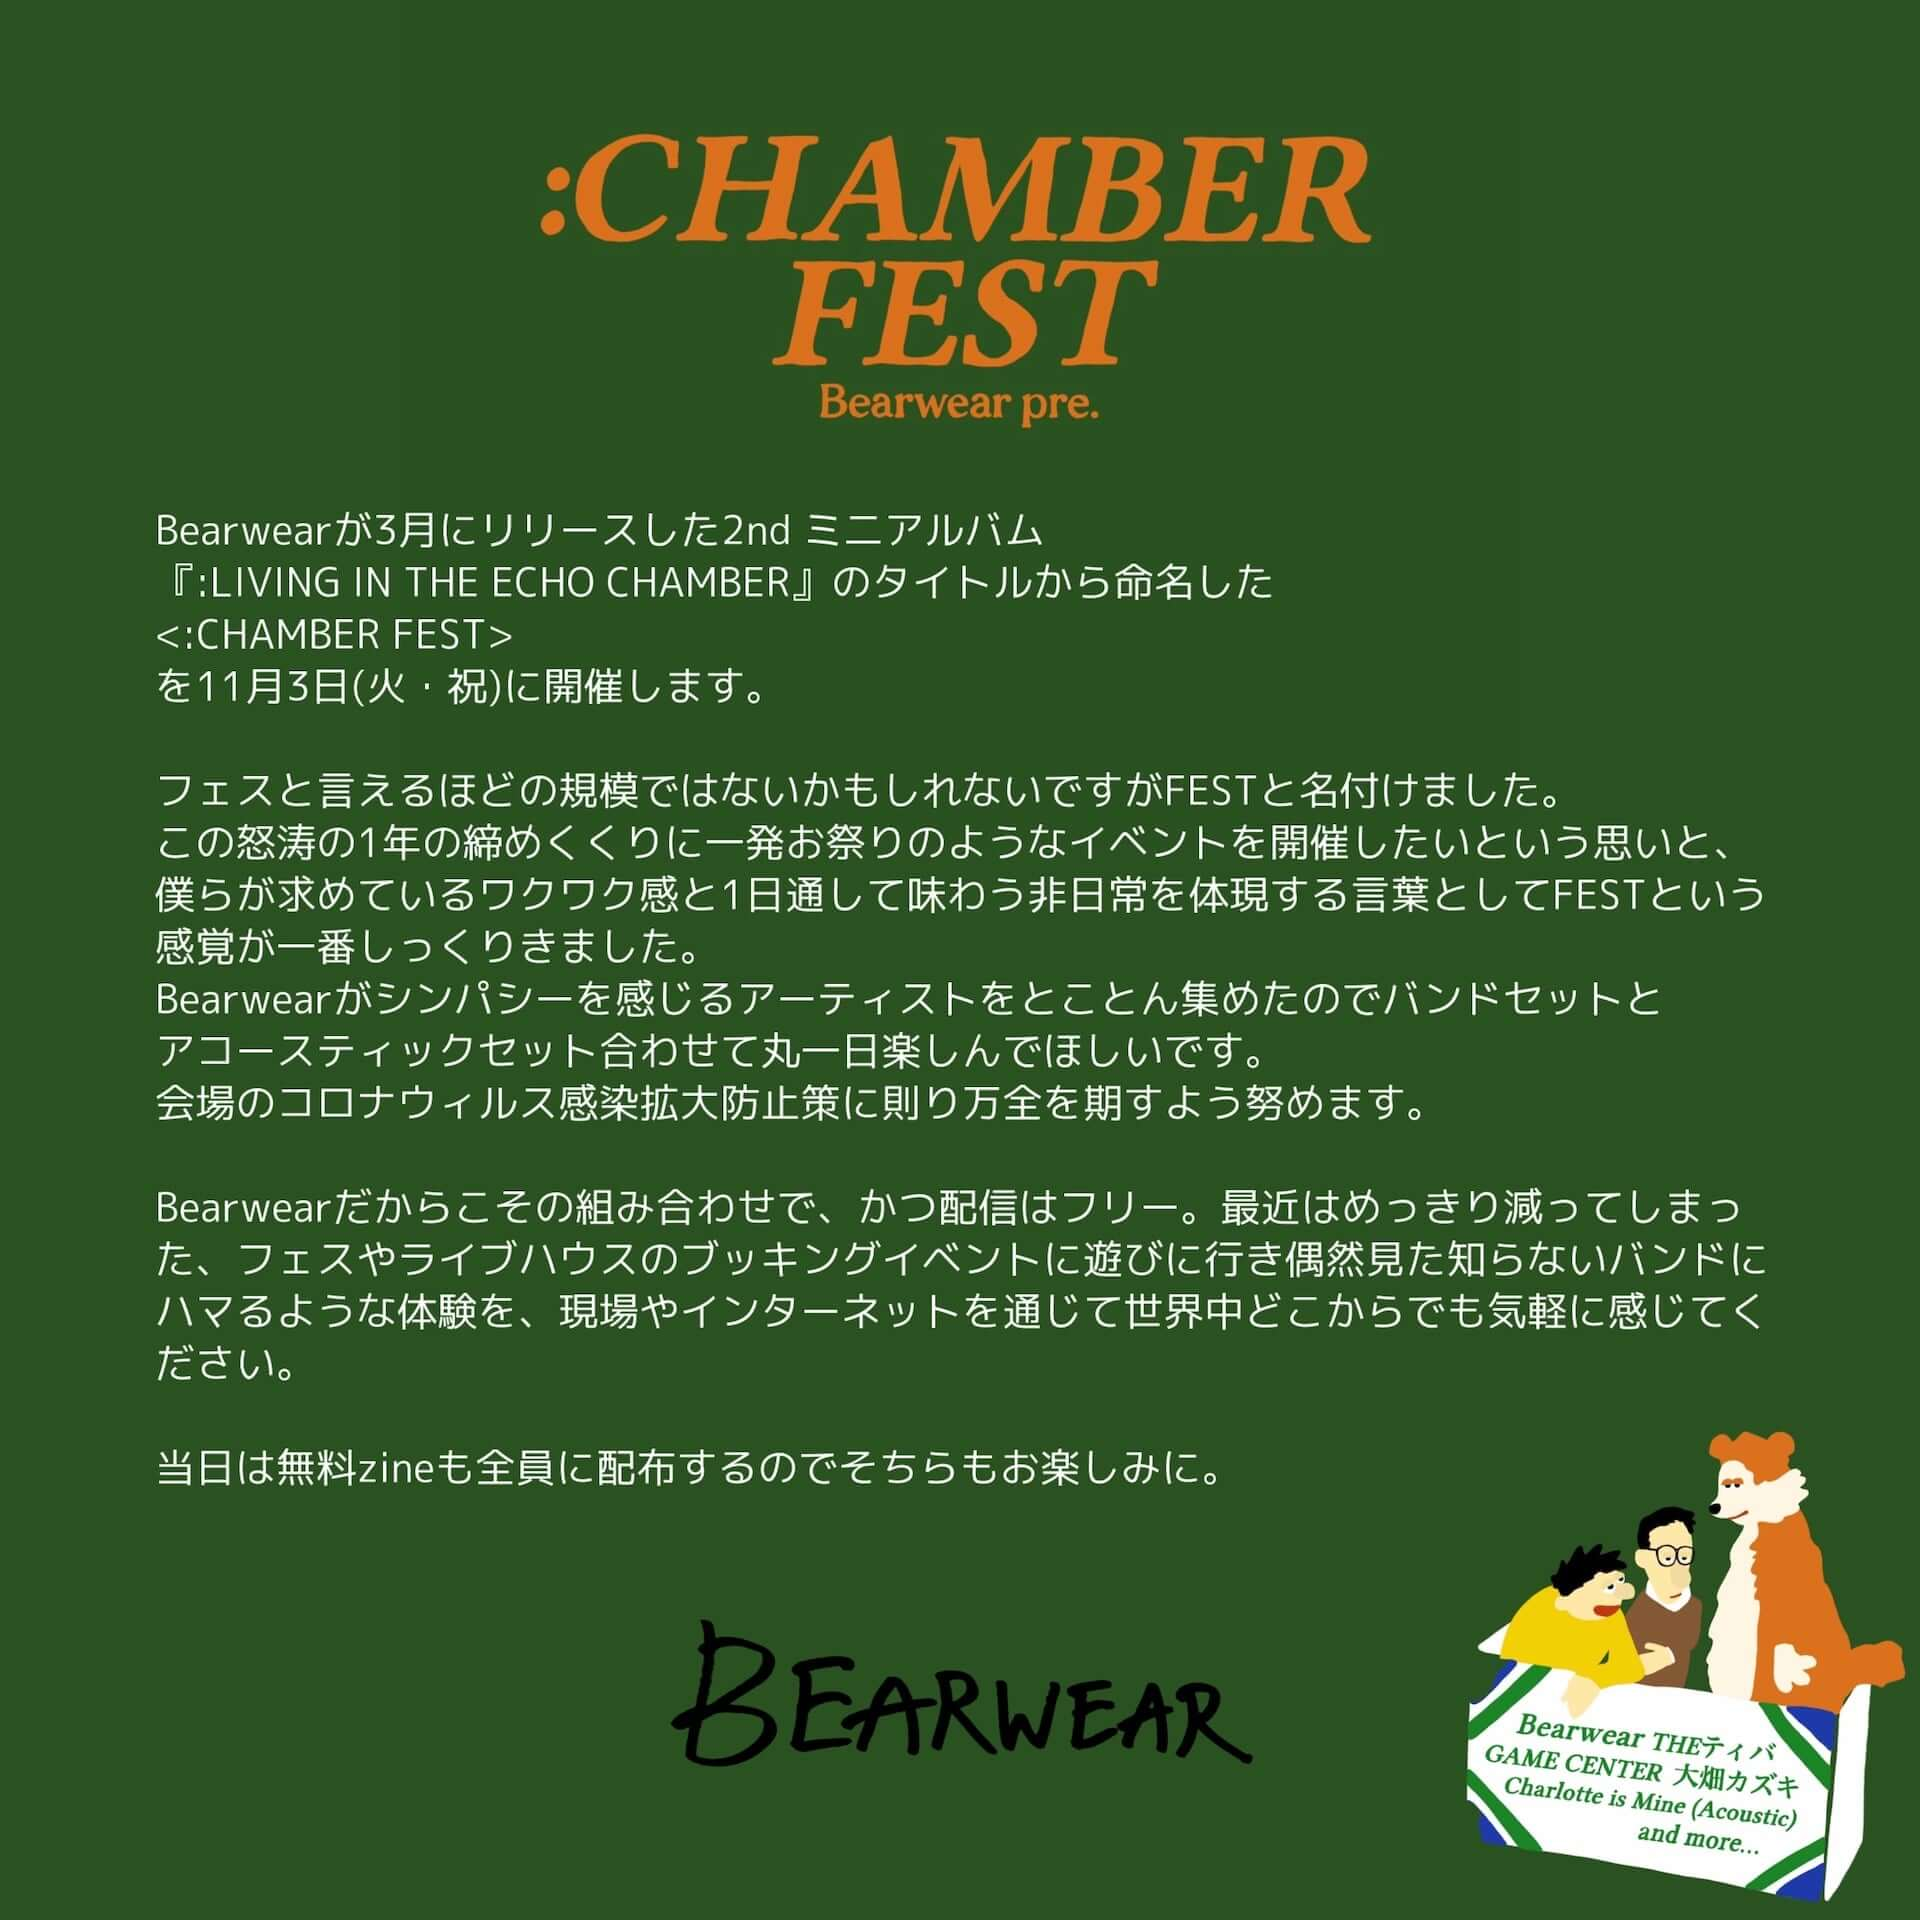 Bearwear主催<:CHAMBER FEST>にNo Buses、For Tracy Hydeが出演決定!渋谷clubasiaより無料生配信も実施 music201015_chamberfest_4-1920x1920